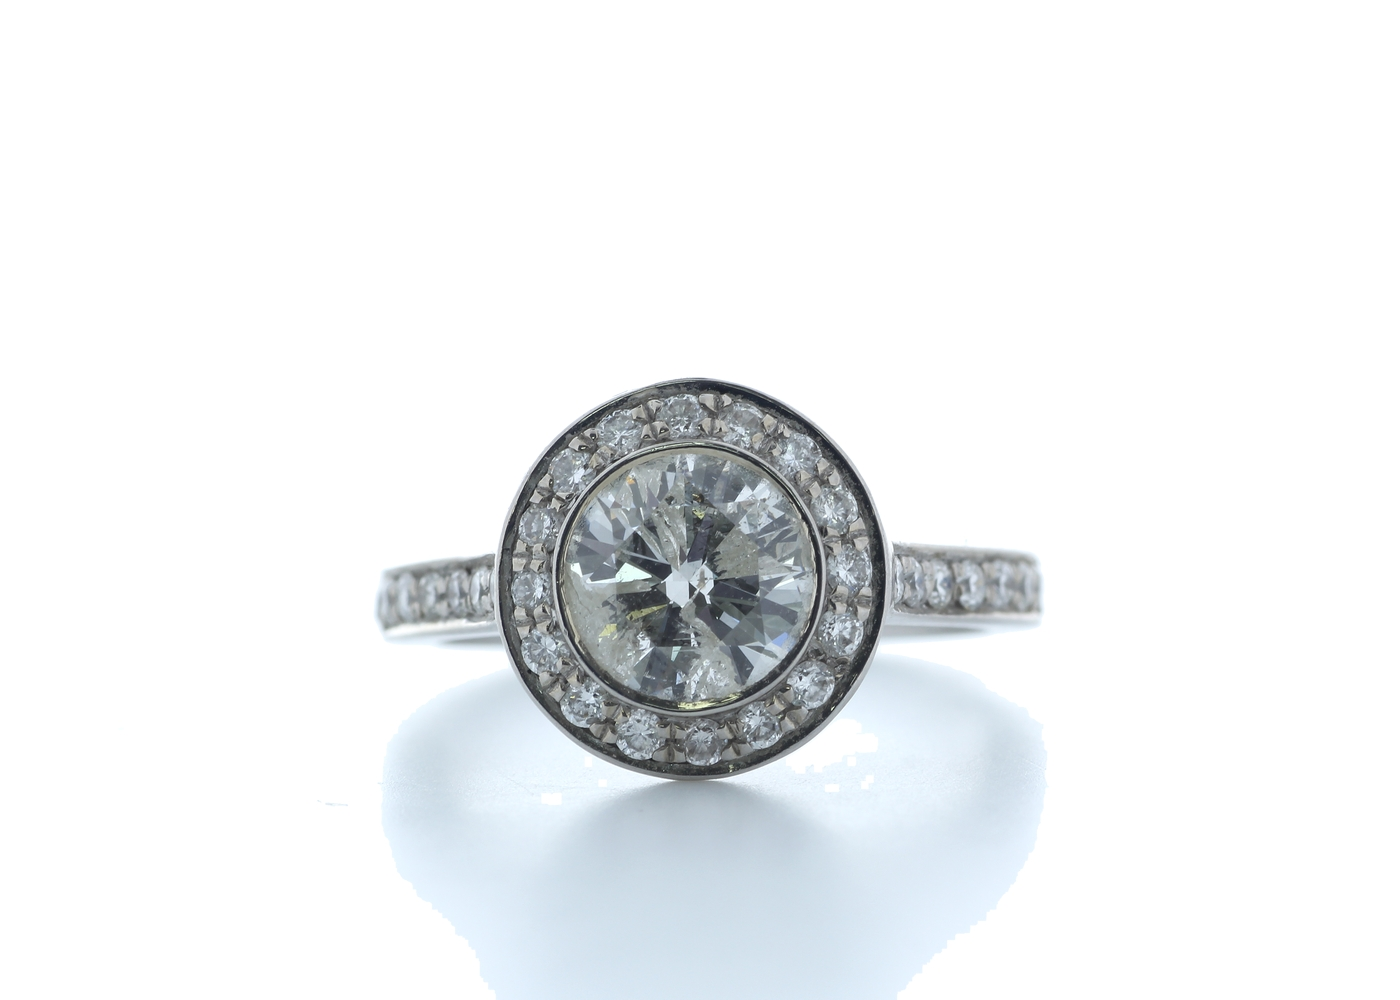 18ct White Gold Single Stone With Halo Setting Ring 2.00 (1.50) Carats